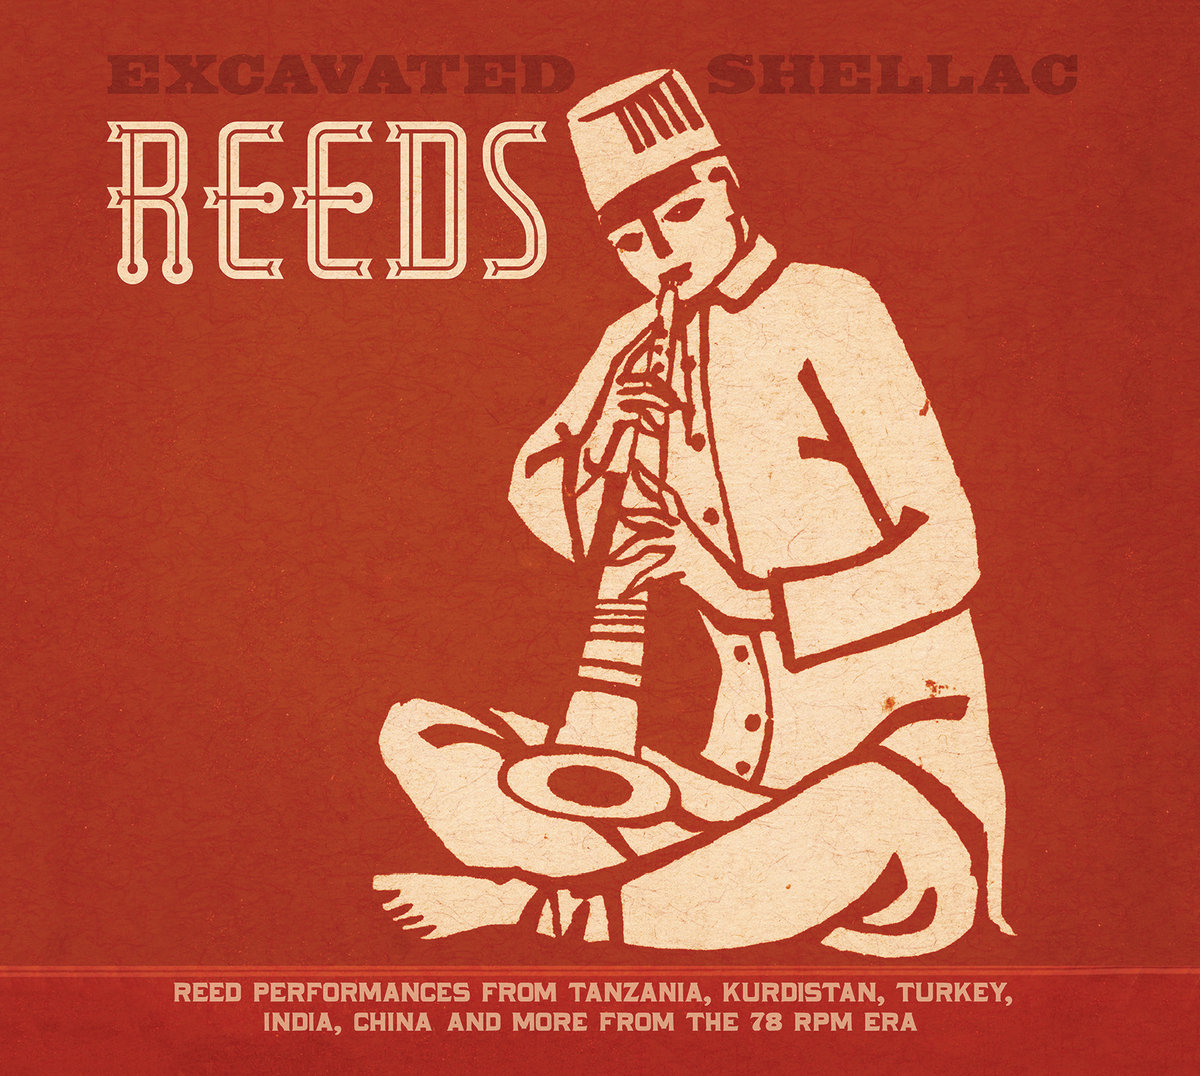 Excavated Shellac: Reeds  Release Date: October 2, 2015 Label: Dust-to-Digital  SERVICE: Restoration, Mastering SOURCE MATERIAL: 78 rpm records NUMBER OF DISCS: 1 GENRE: Roots FORMAT: CD, LP